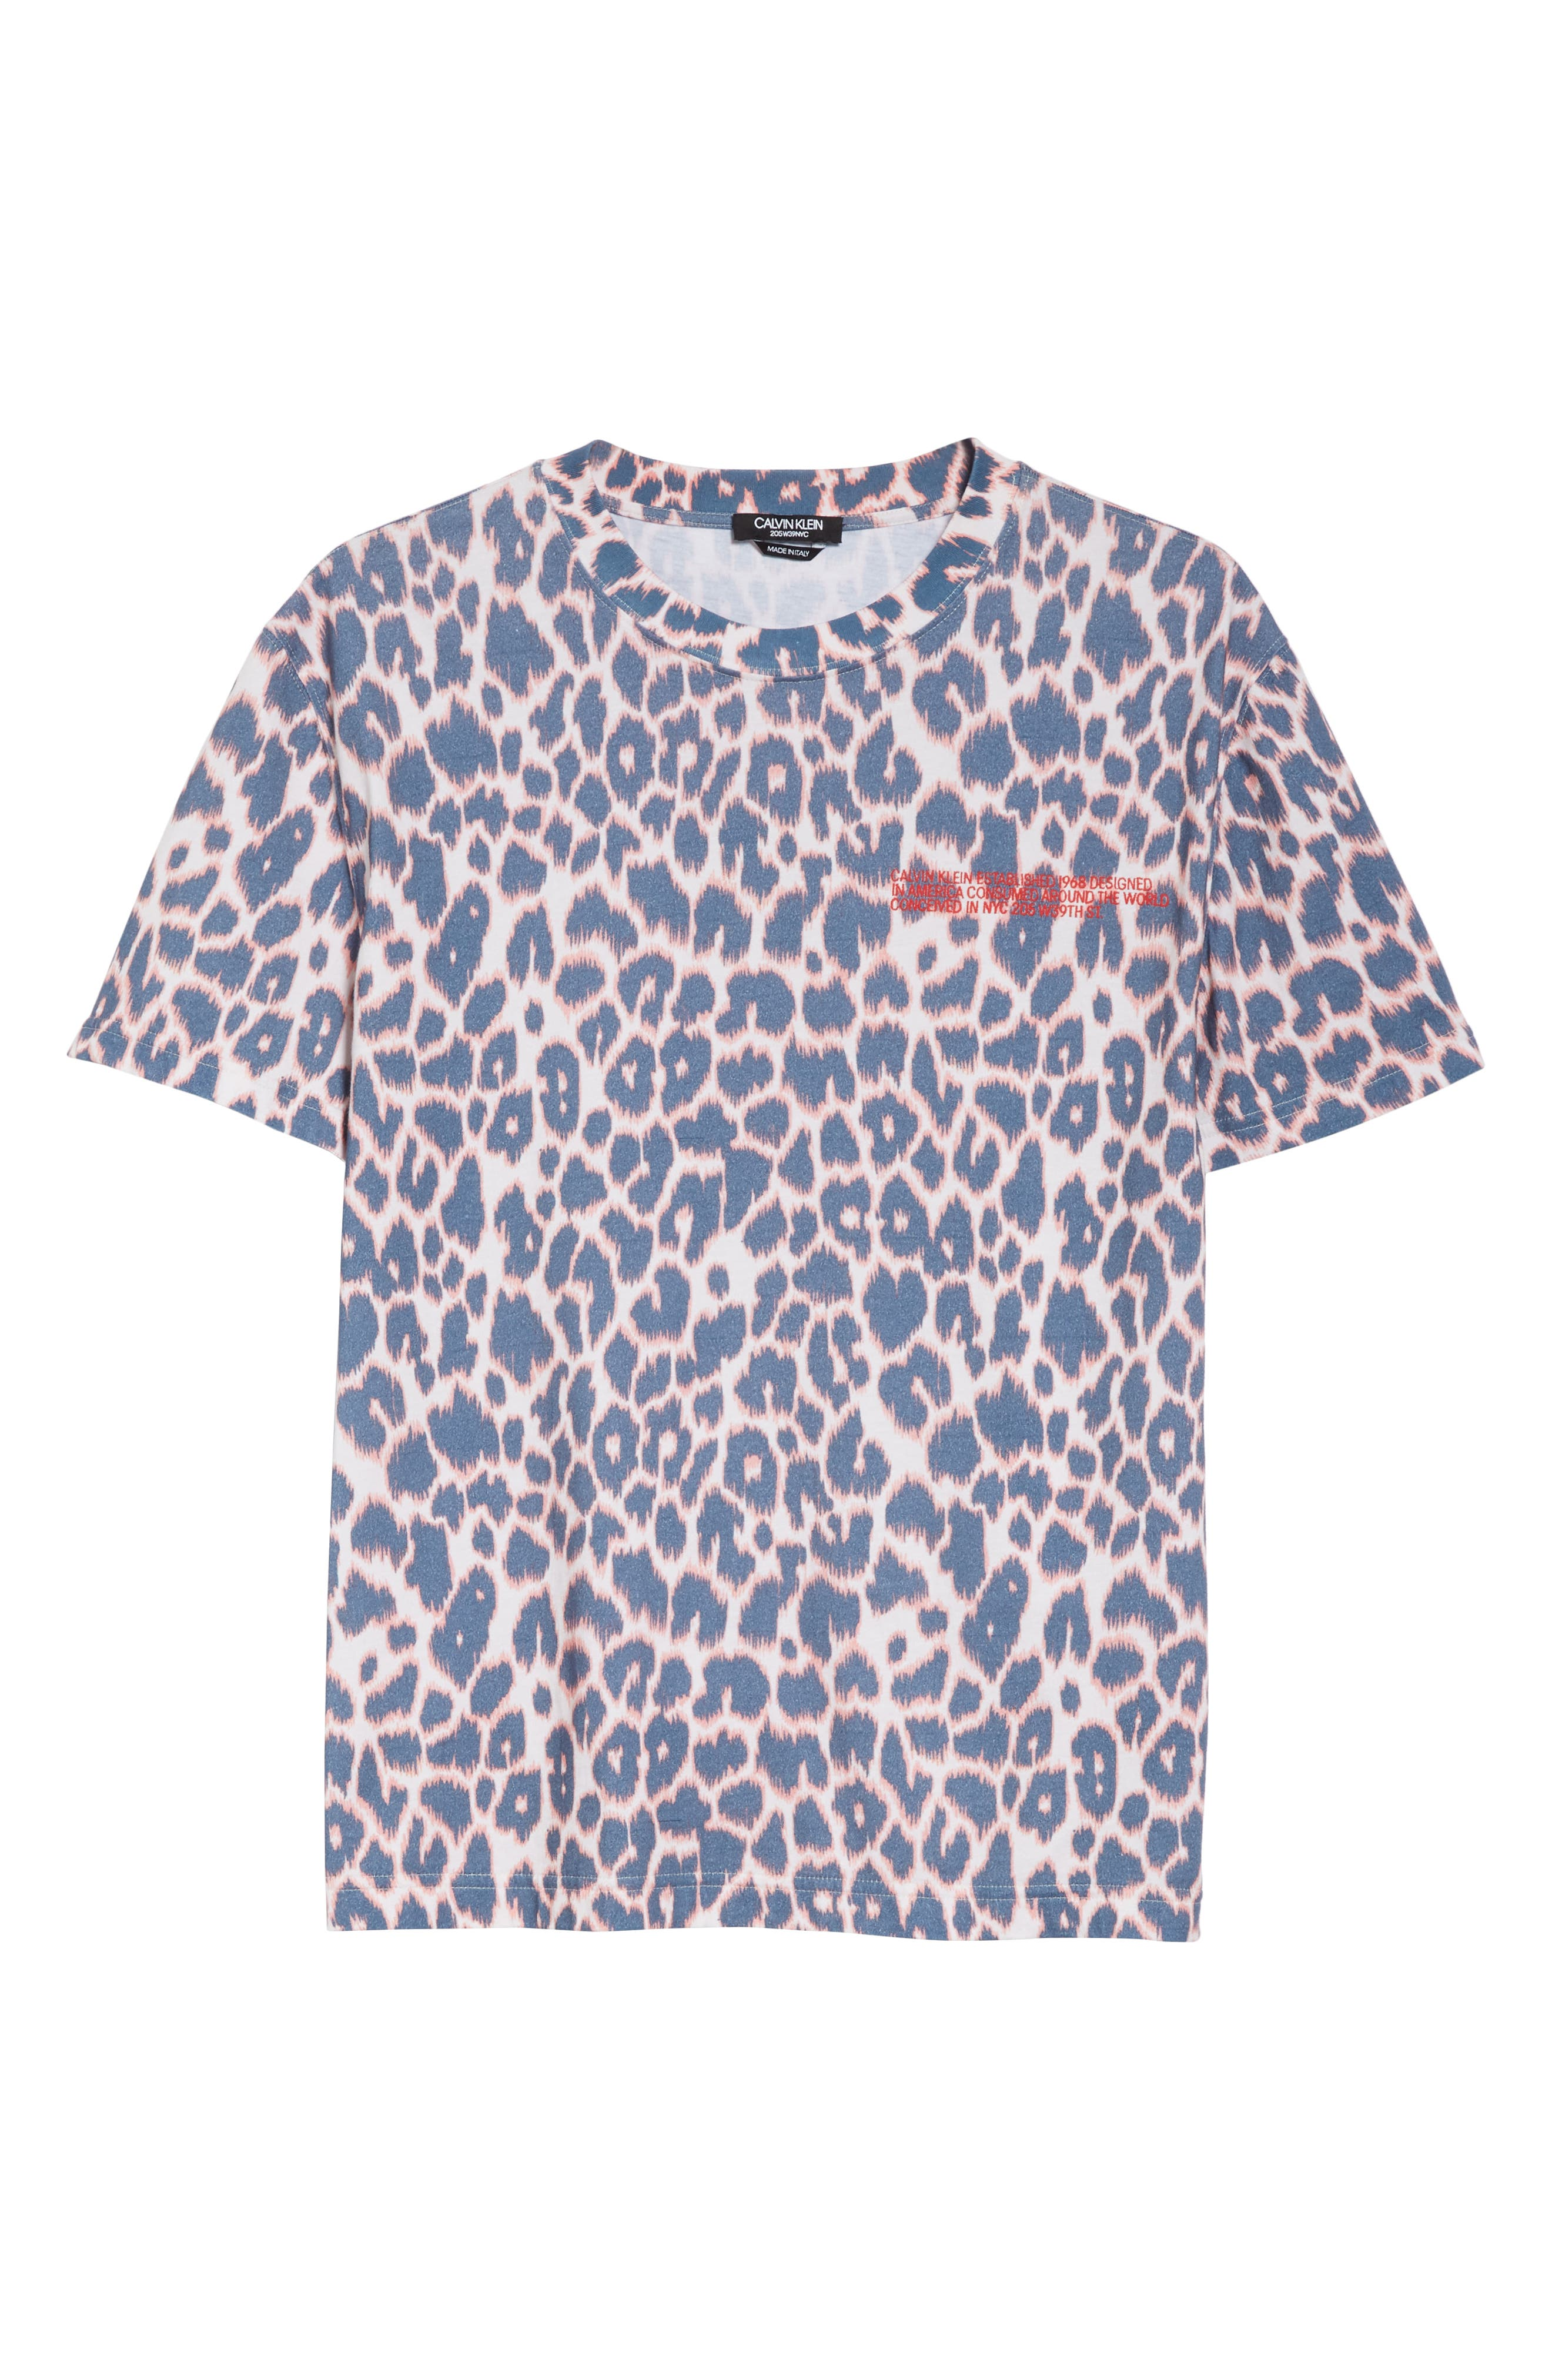 CALVIN KLEIN 205W39NYC, Electric Panther Print T-Shirt, Alternate thumbnail 6, color, ELECTRIC PANTHERE